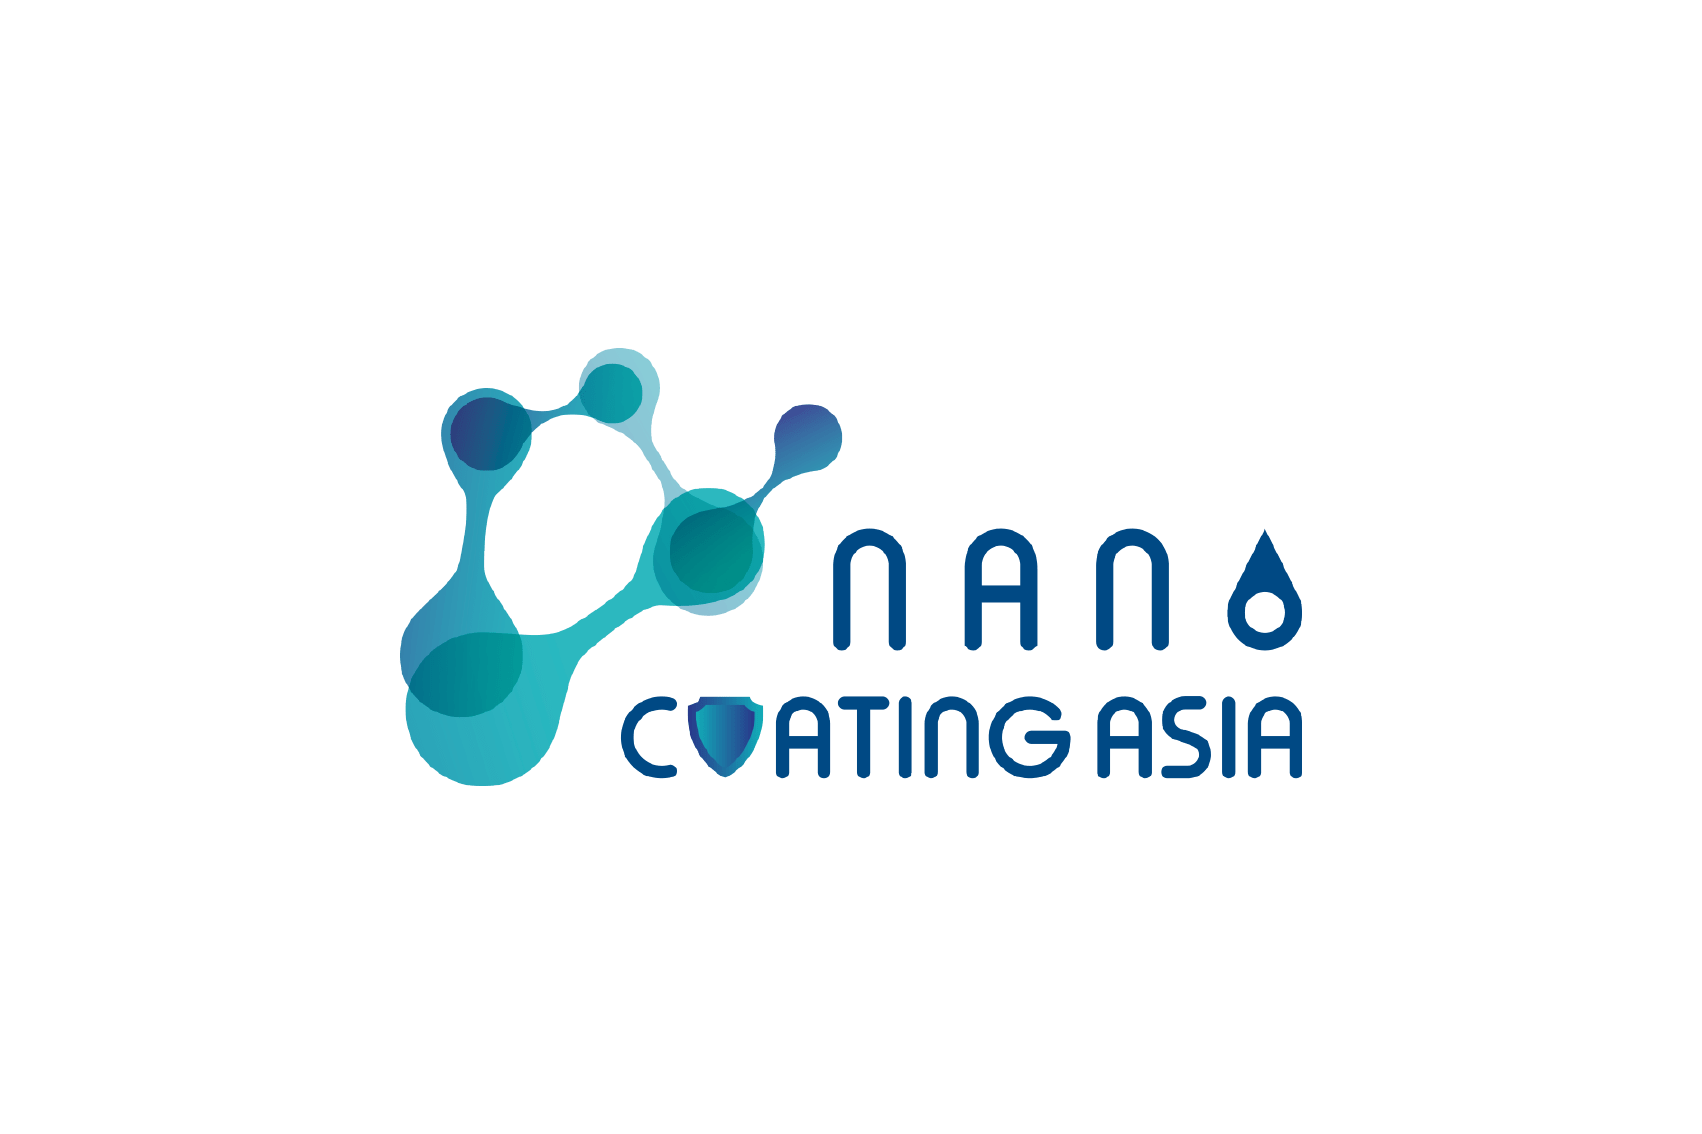 Nano Coating Asia by Flexspace